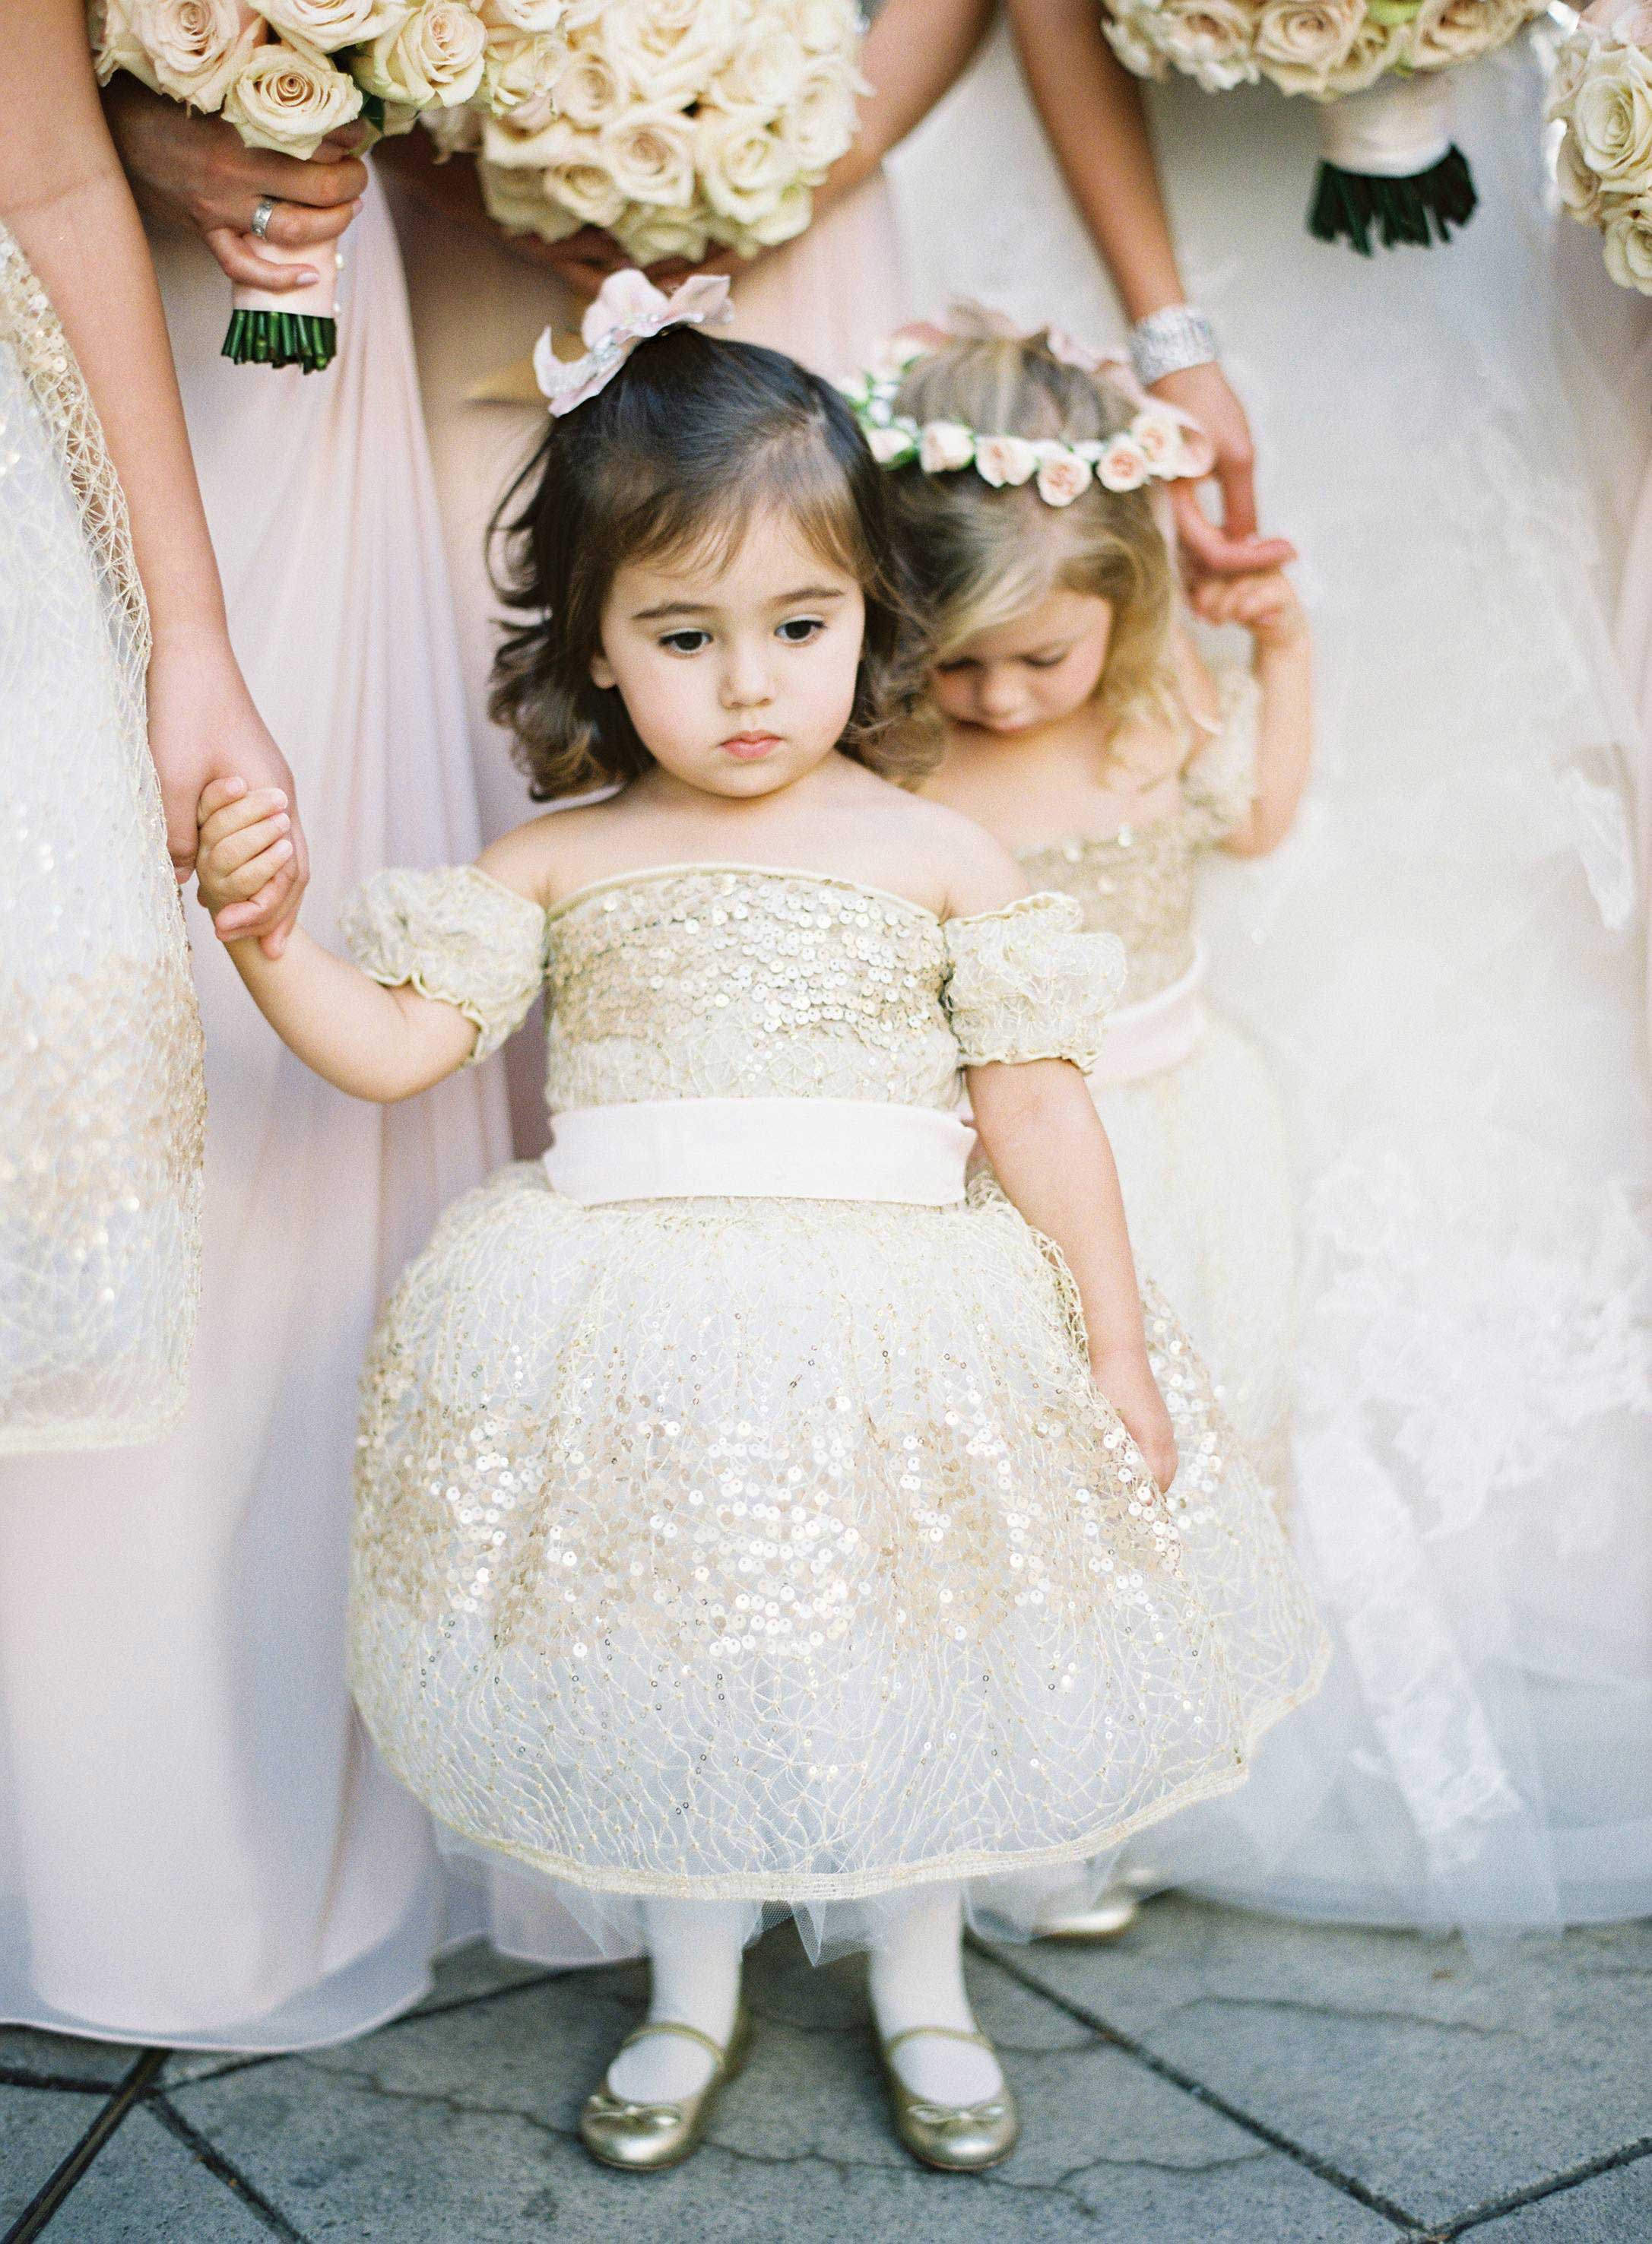 Flower girl dresses non white dress options inside weddings flower girl in gold sequin dress mightylinksfo